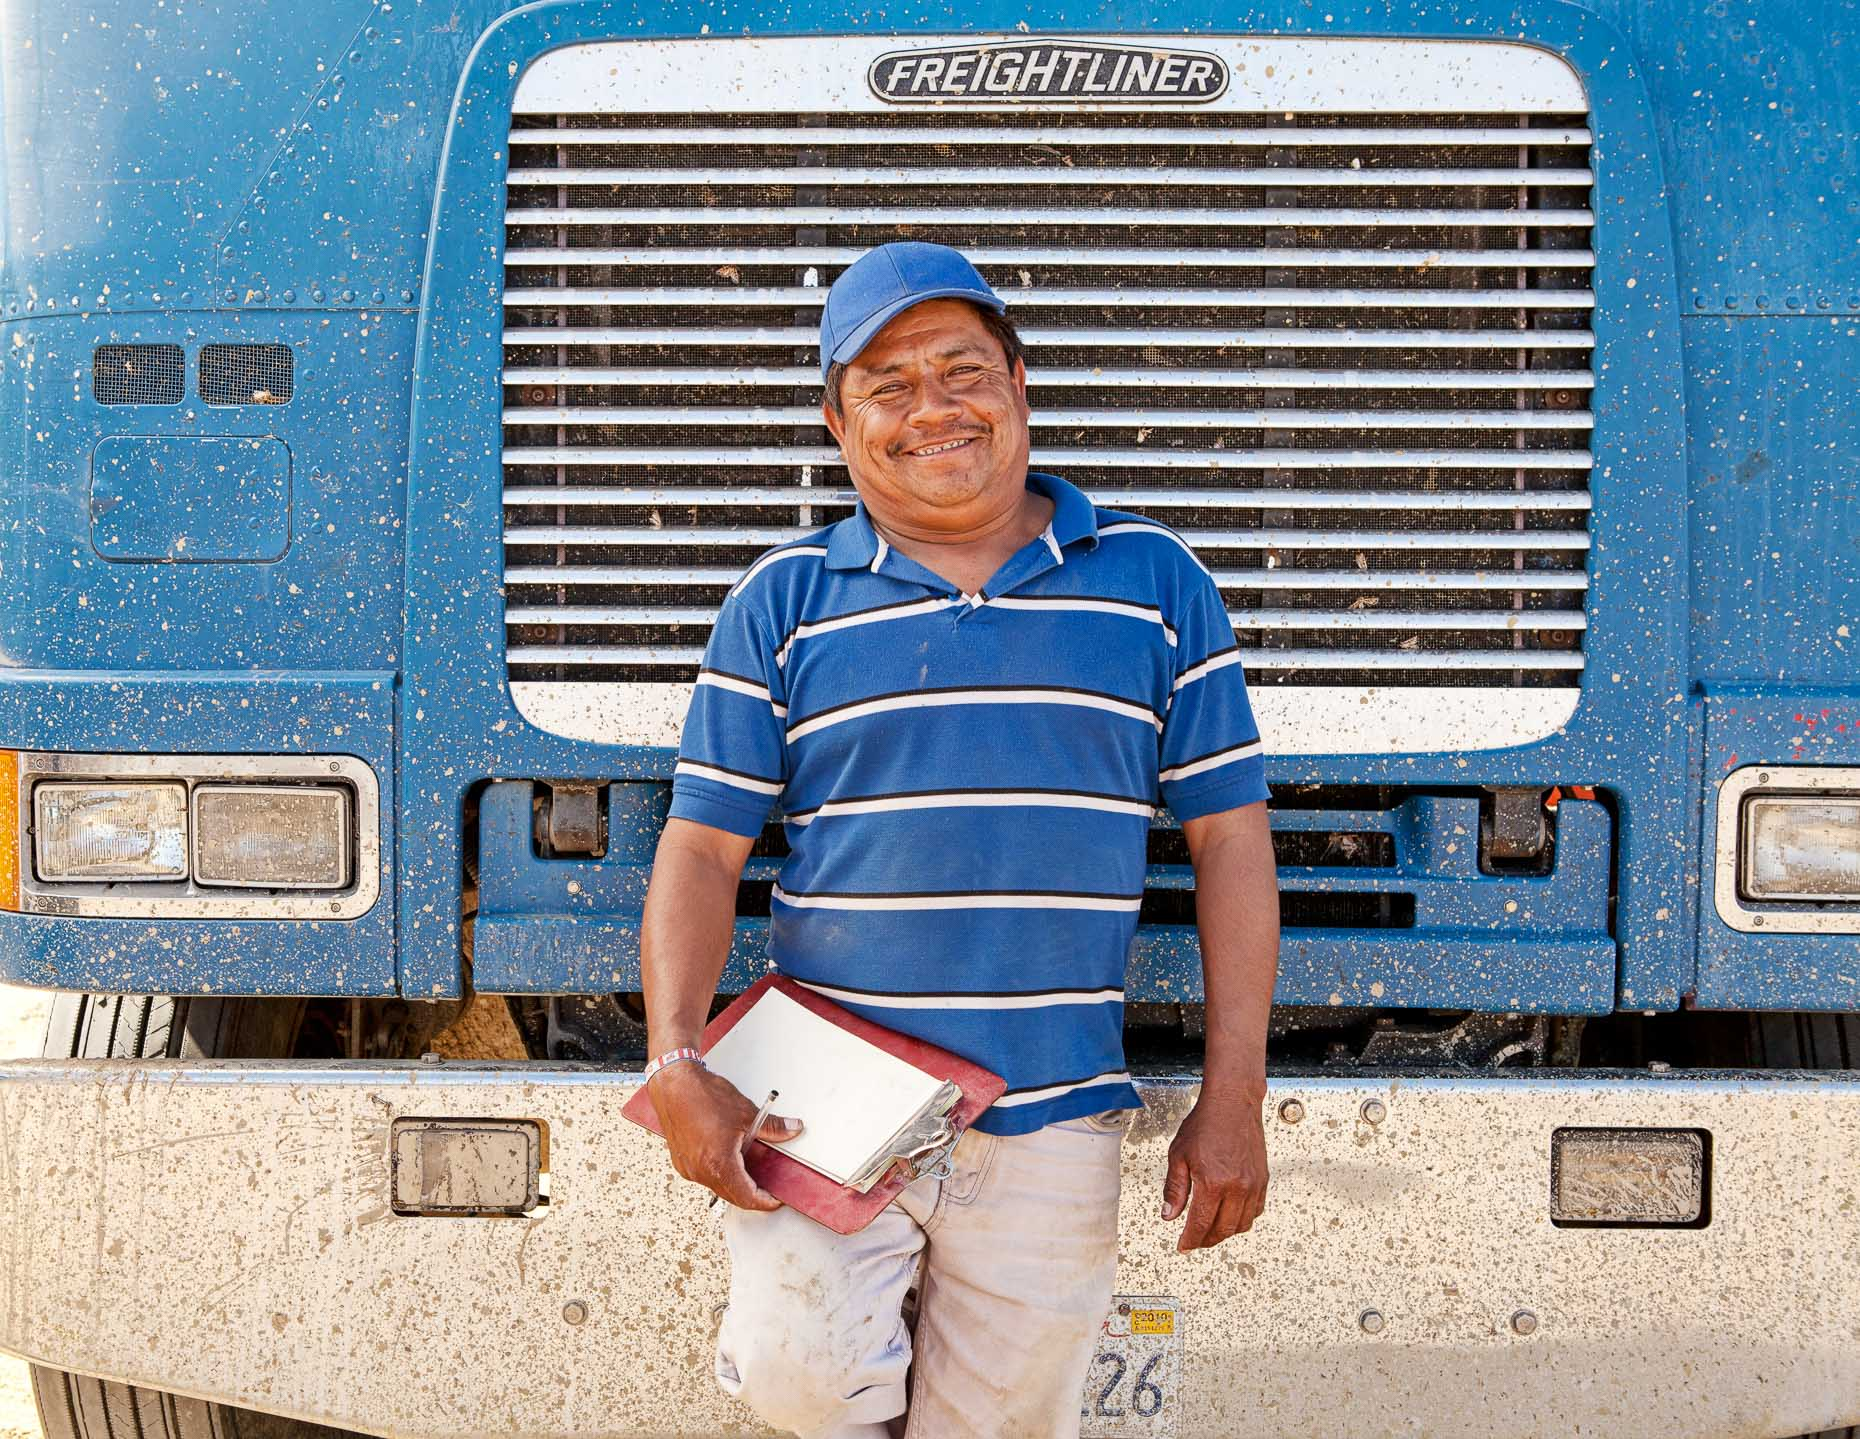 Truck driver with white and blue striped shirt standing in front of chrome grill of big rig truck by David Zaitz.